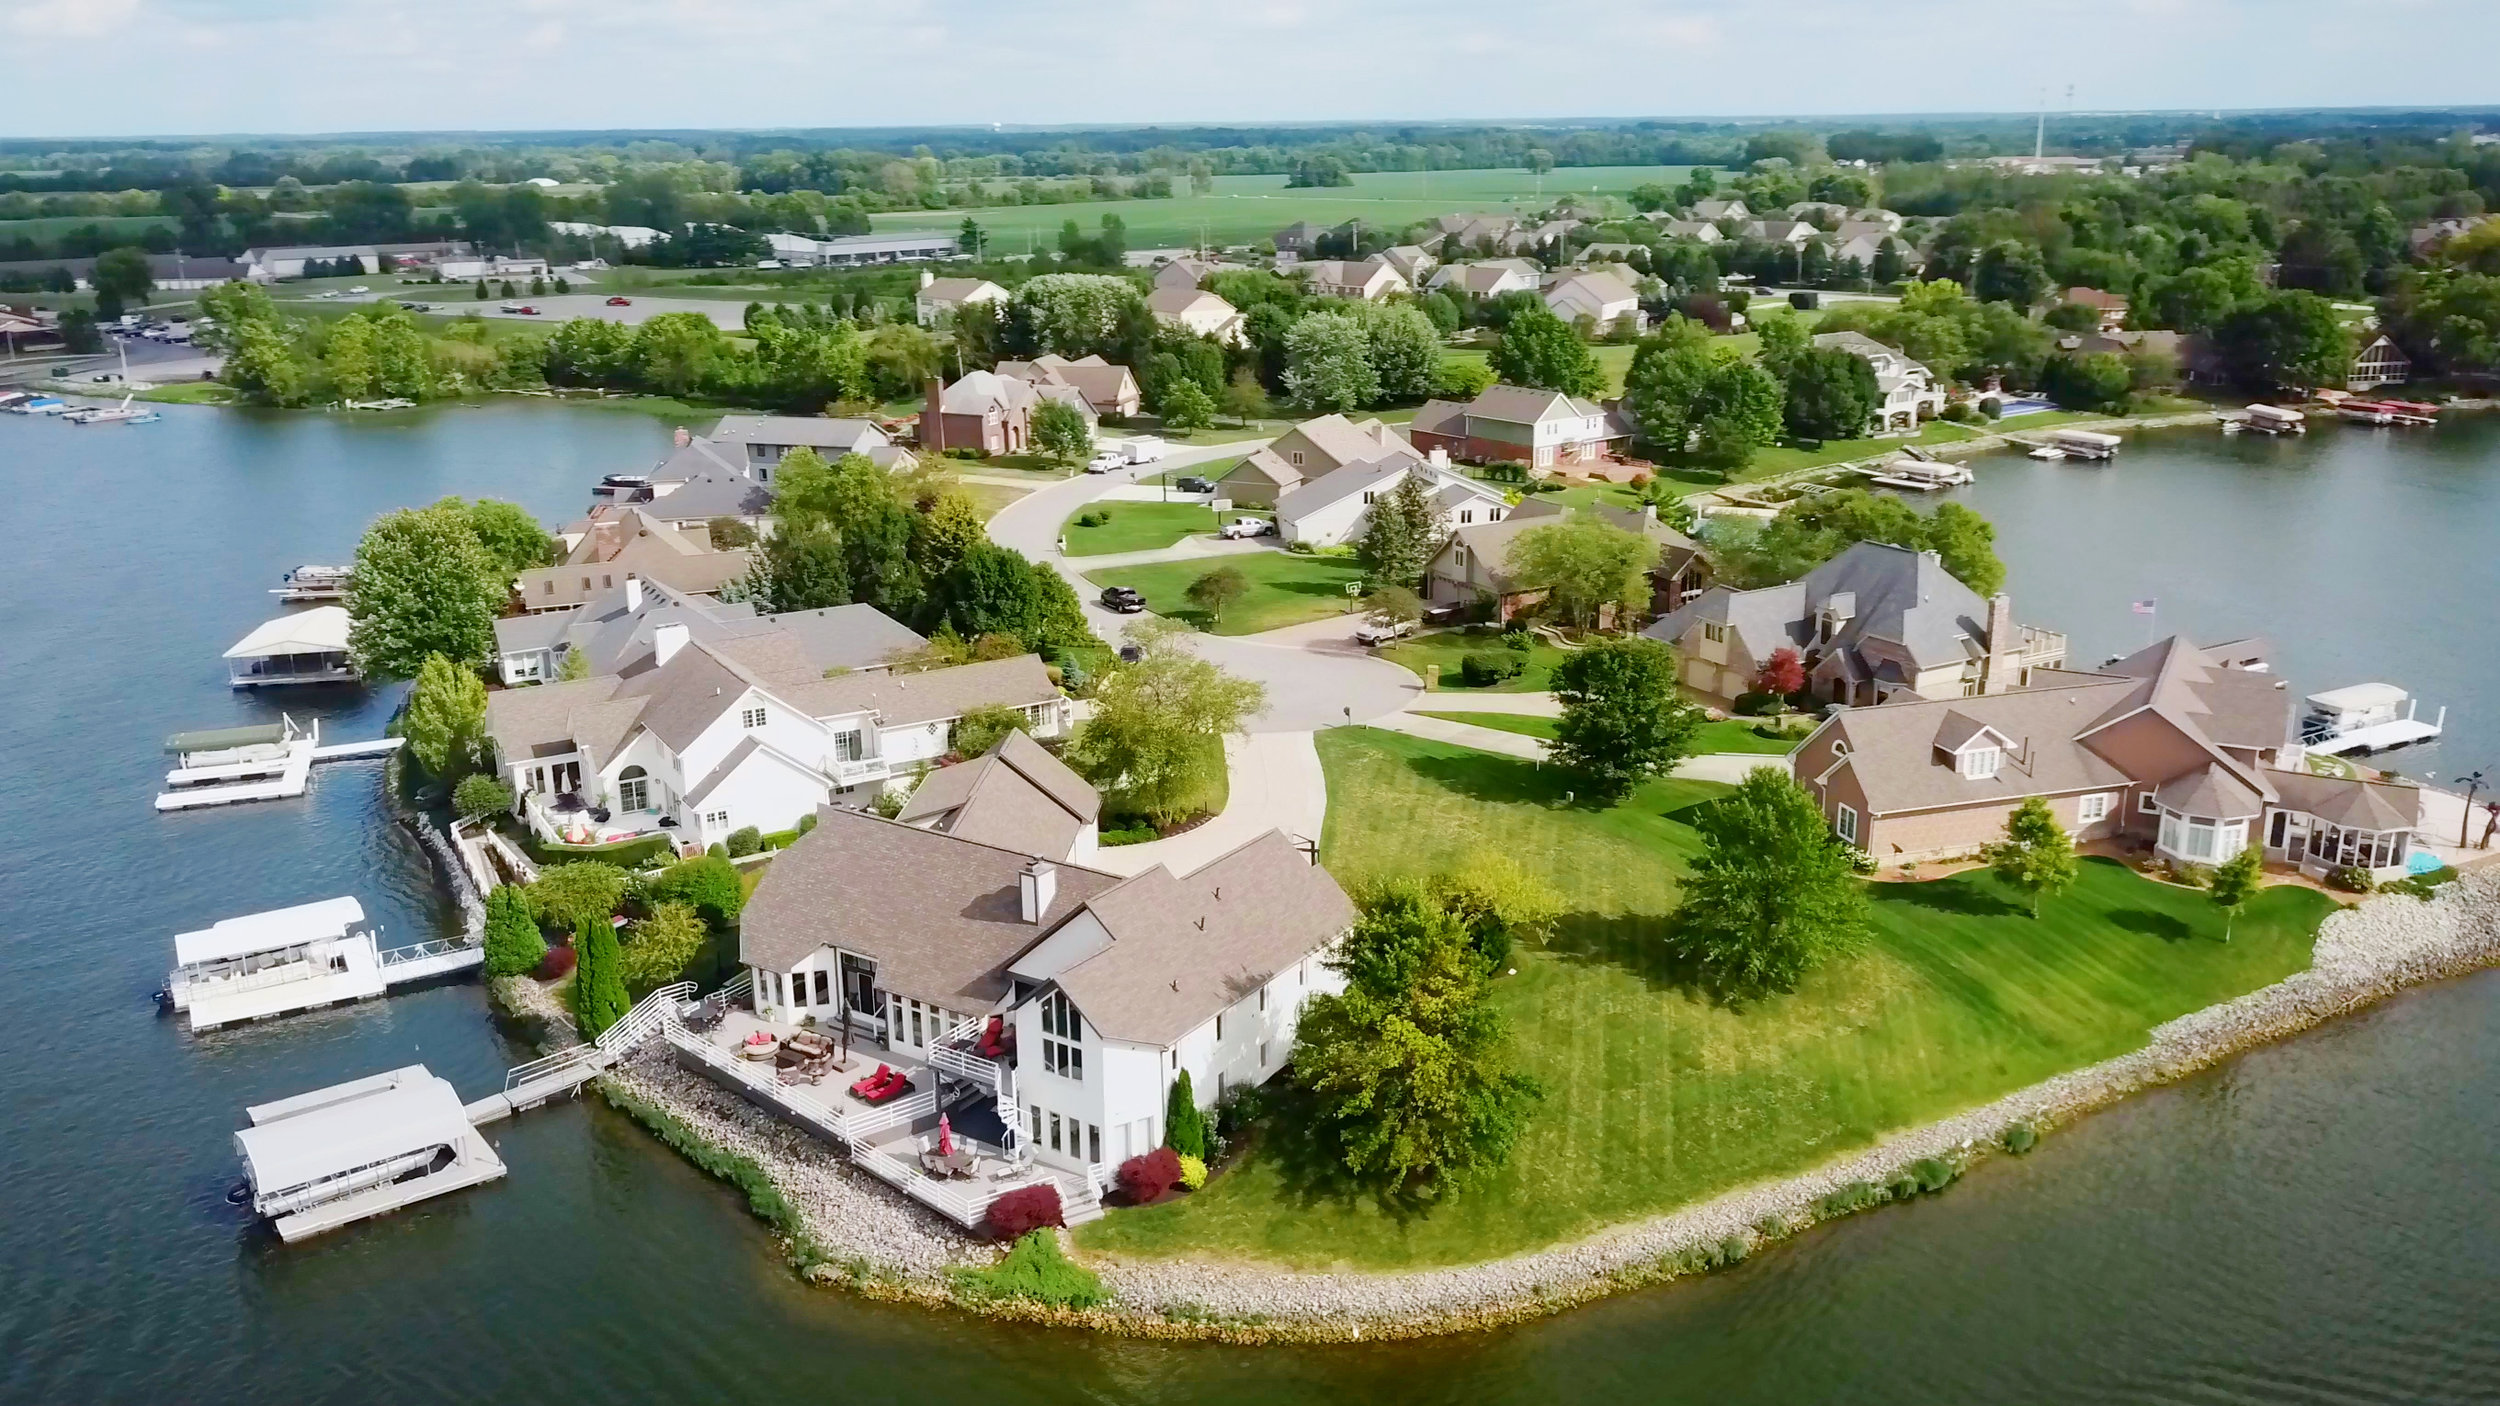 Drone Imagery & Videos - capturing your property from a unique perspective